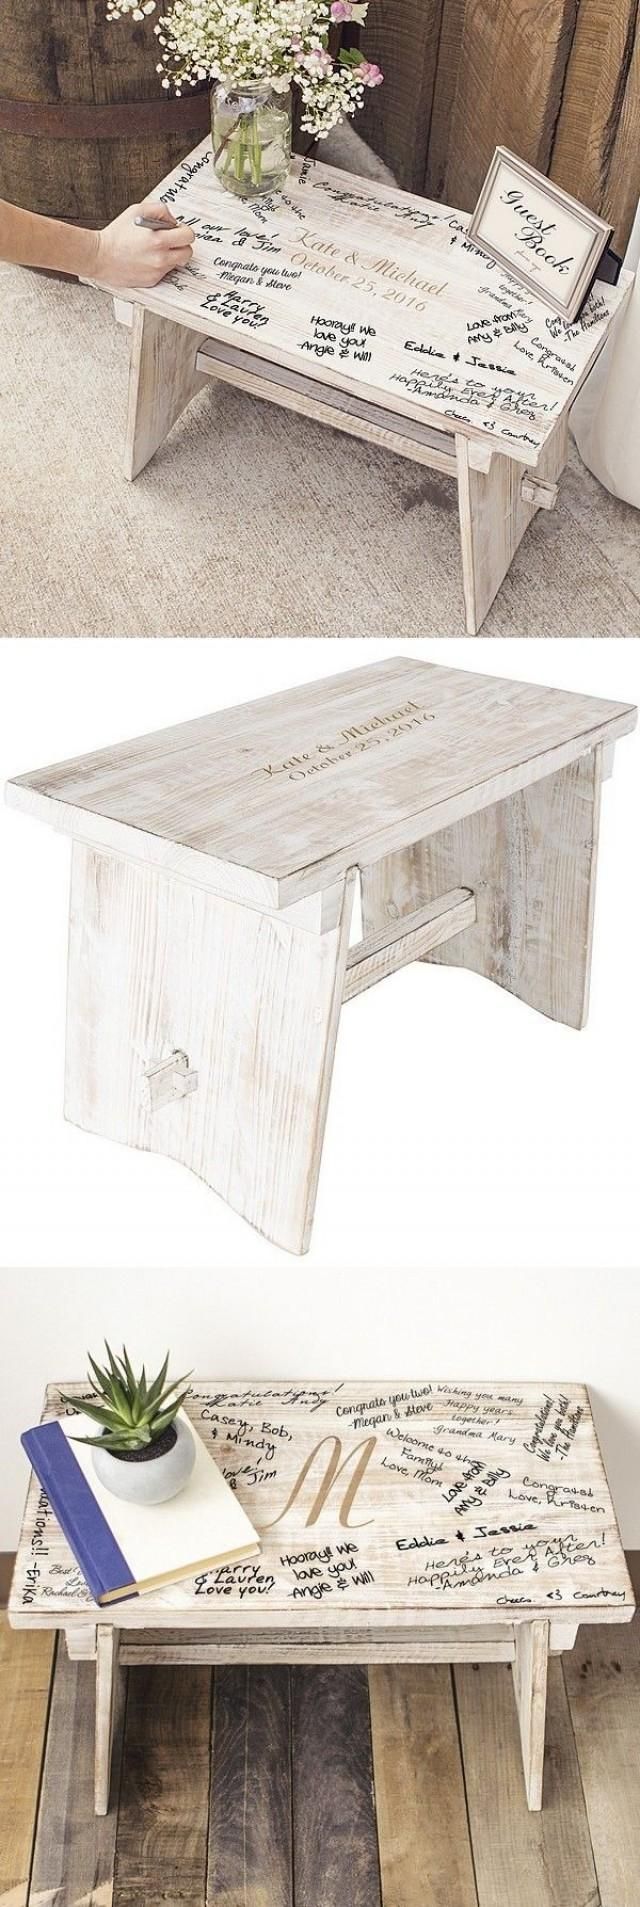 Unique End Tables Ideas Cool End Tables Great Tables